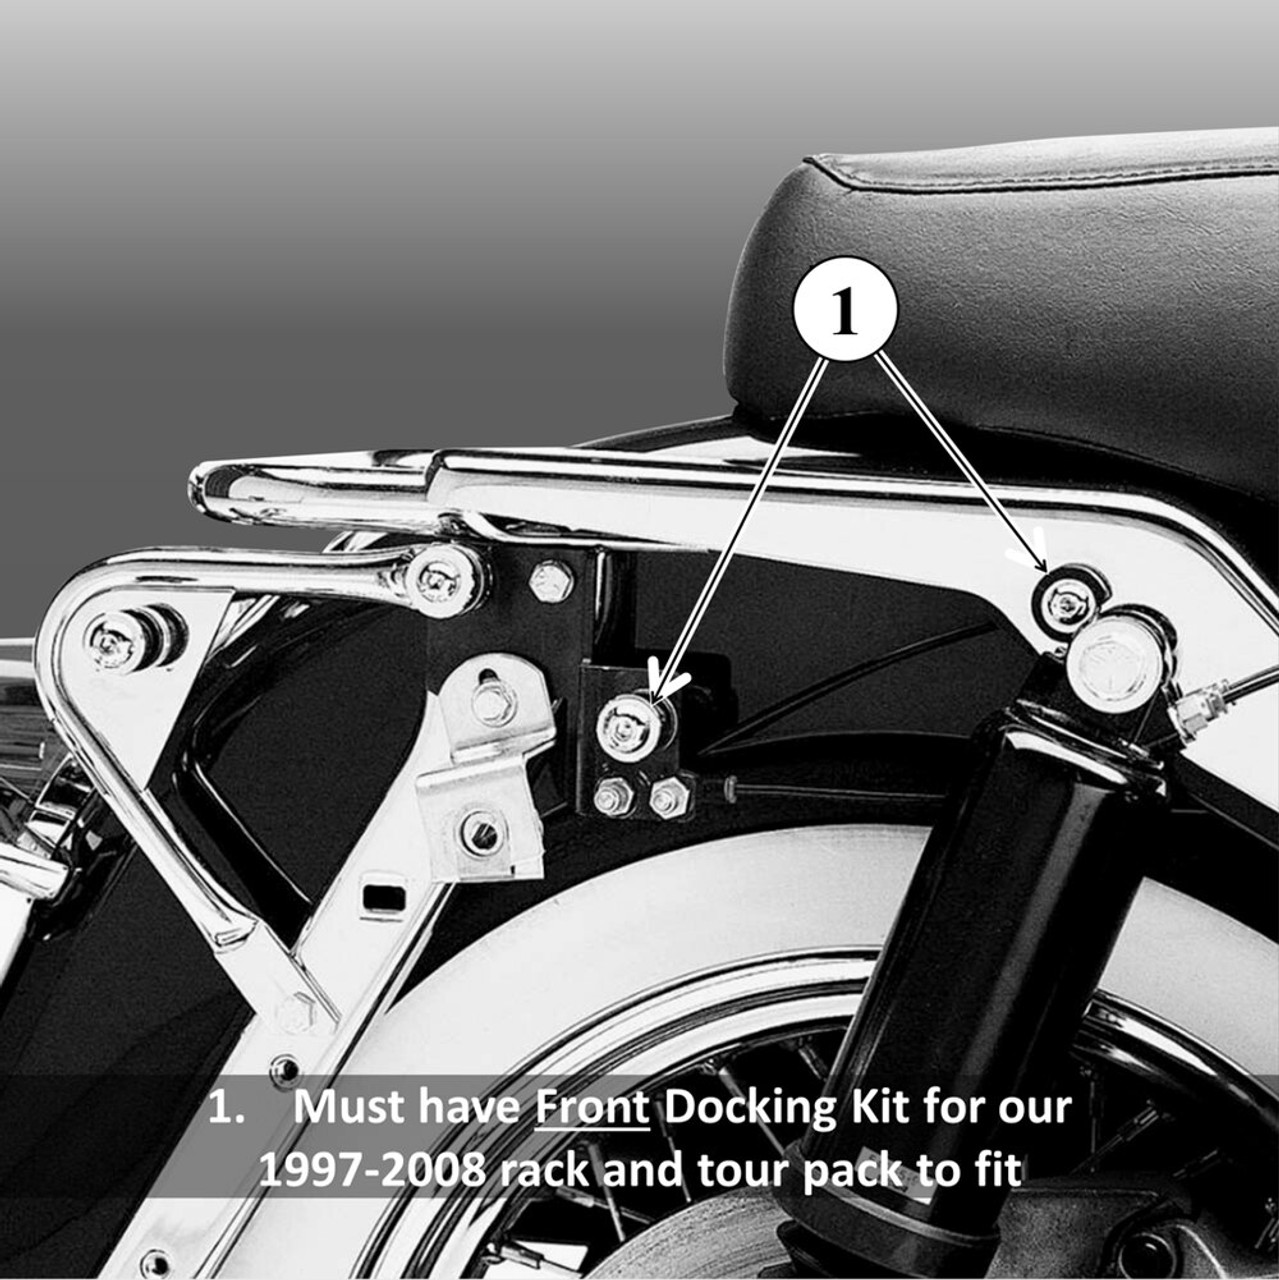 RX-9708SB-PS and RX-9708SB-B fit FRONT/FORWARD 4-point docking kit on Harley touring bikes; the 1997-2008 rack will not work if you don't have this kit on your bike